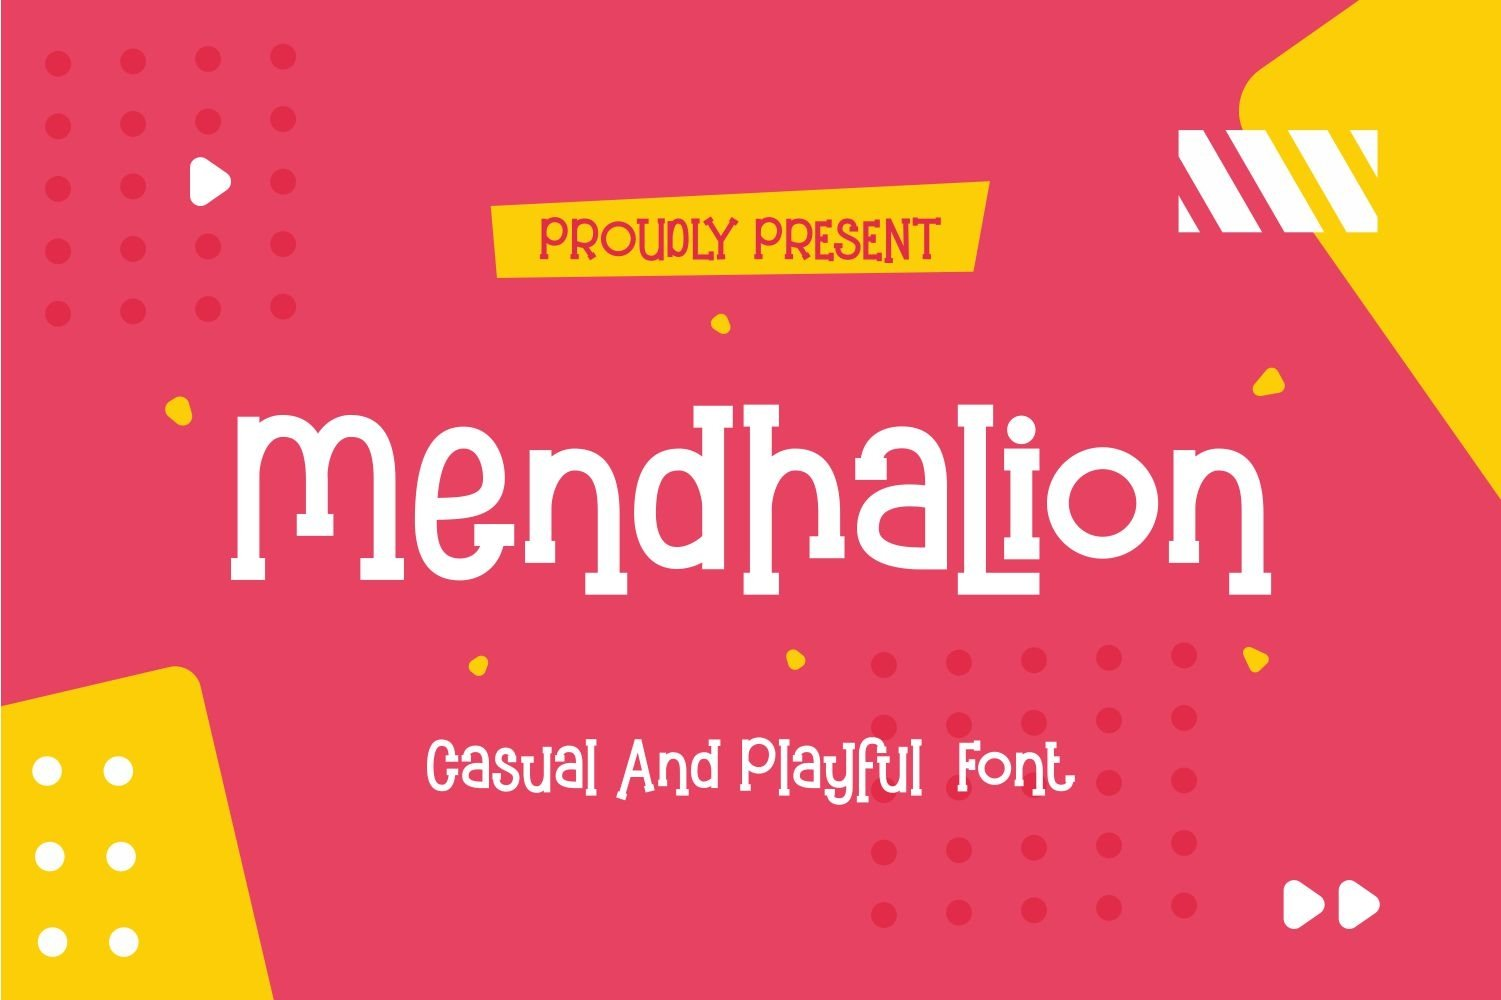 Mendhalion - Casual & Playful Font example image 1